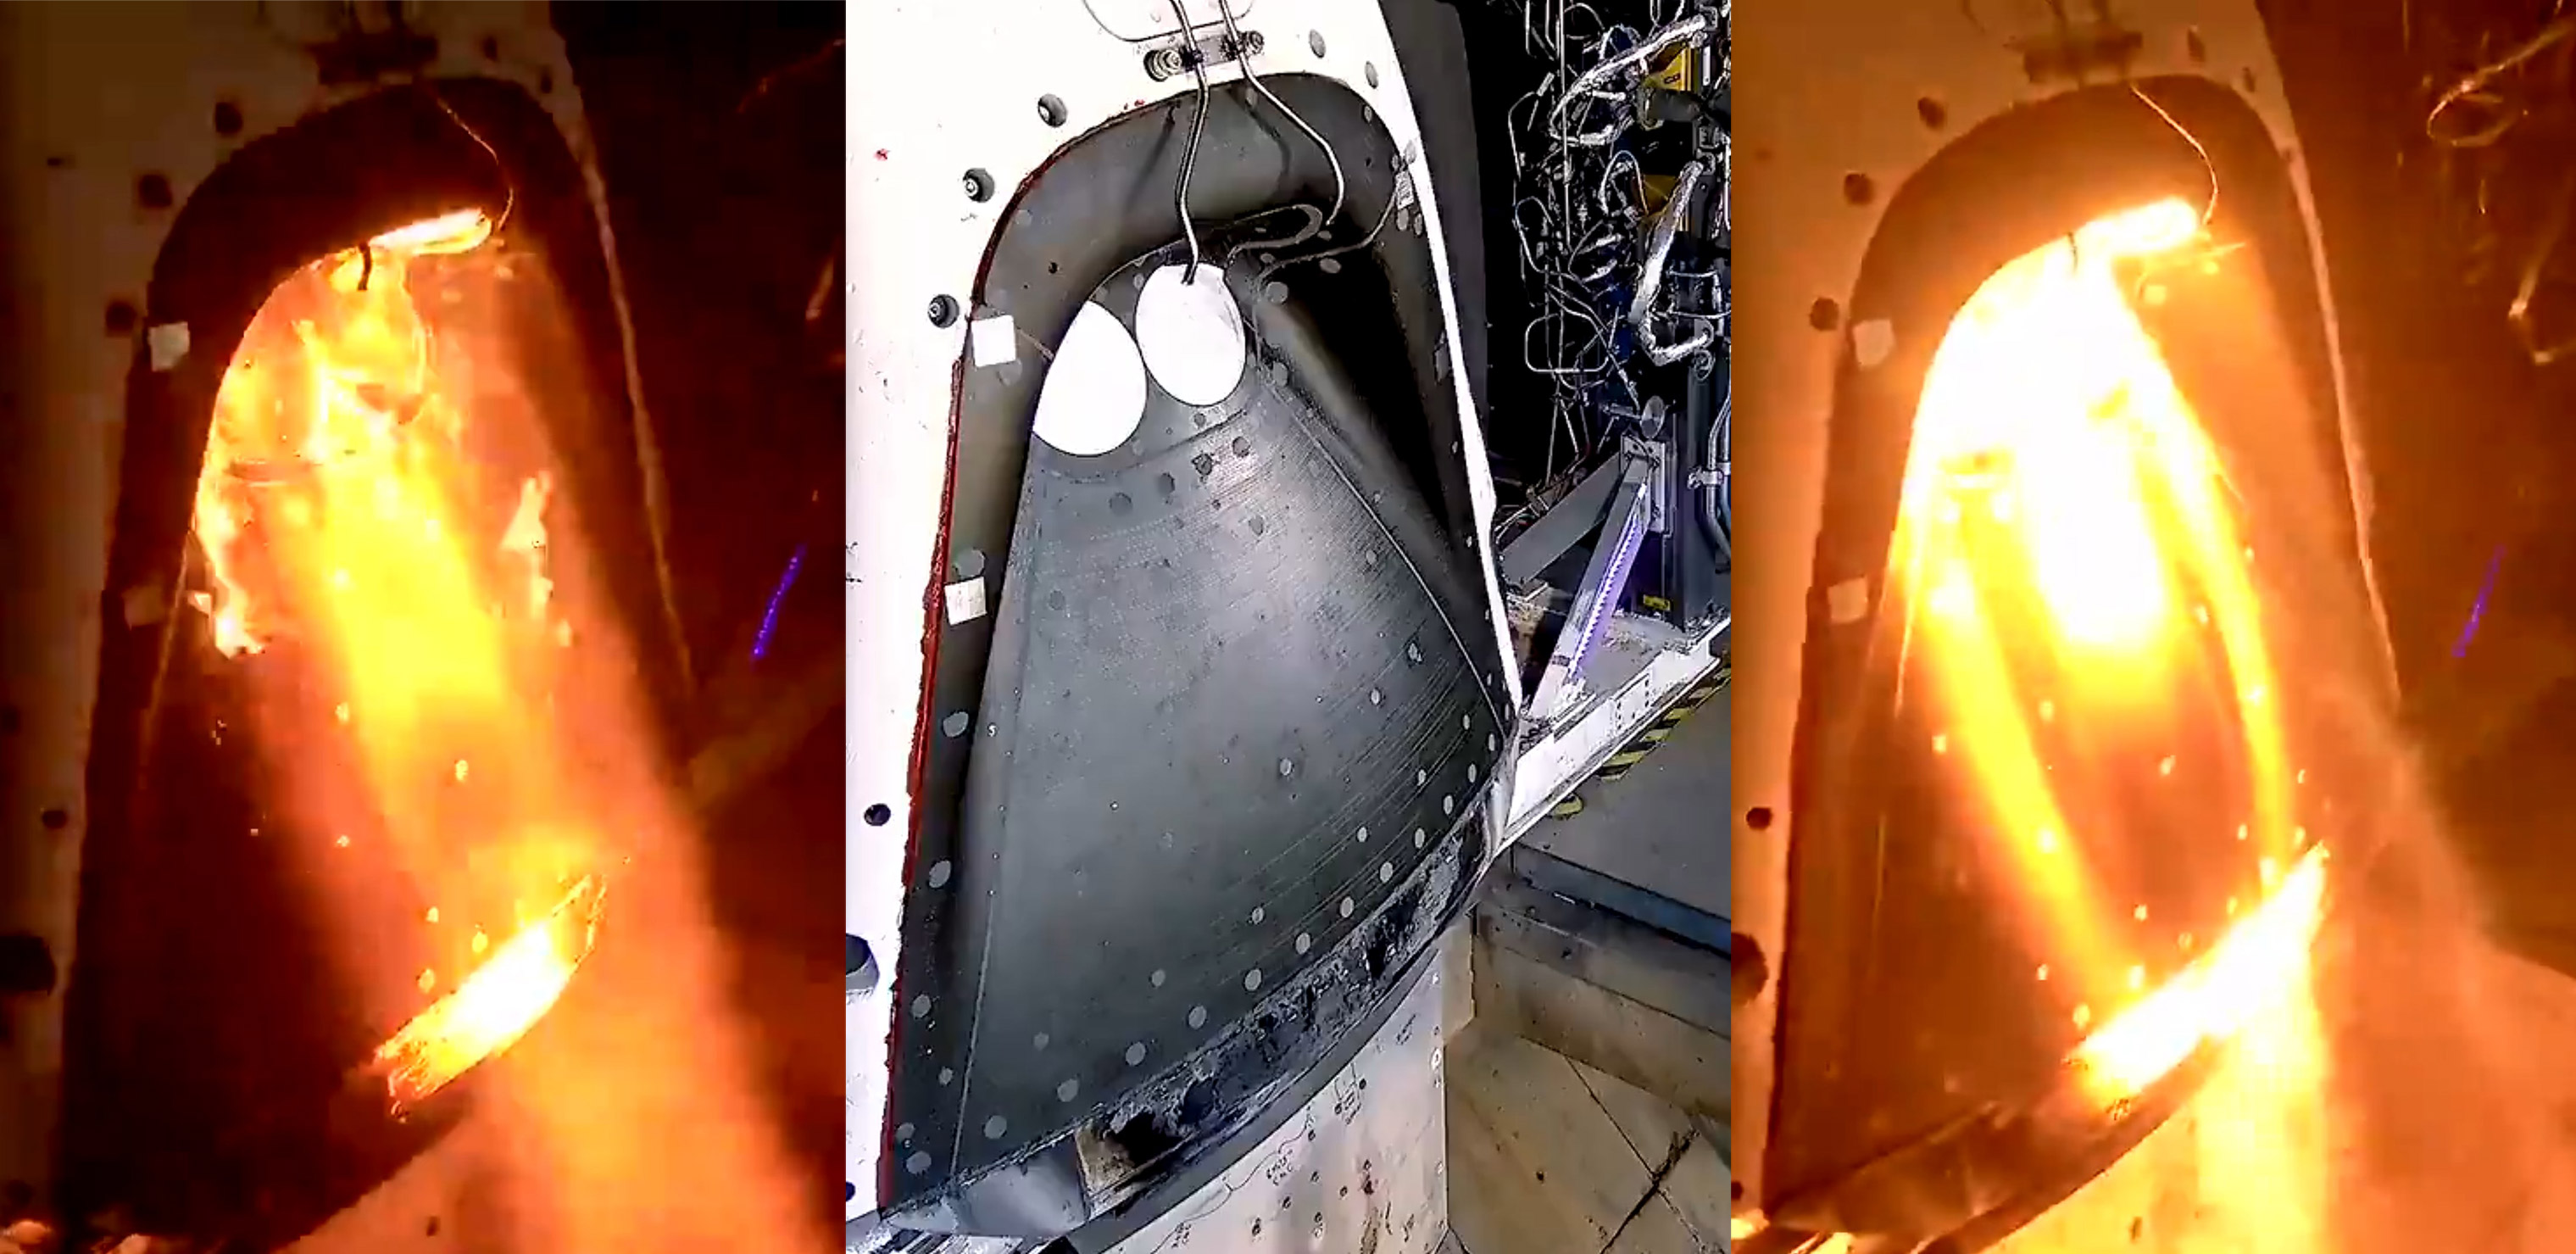 SpaceX's Crew Dragon is about to escape a supersonic rocket: here's how to watch live